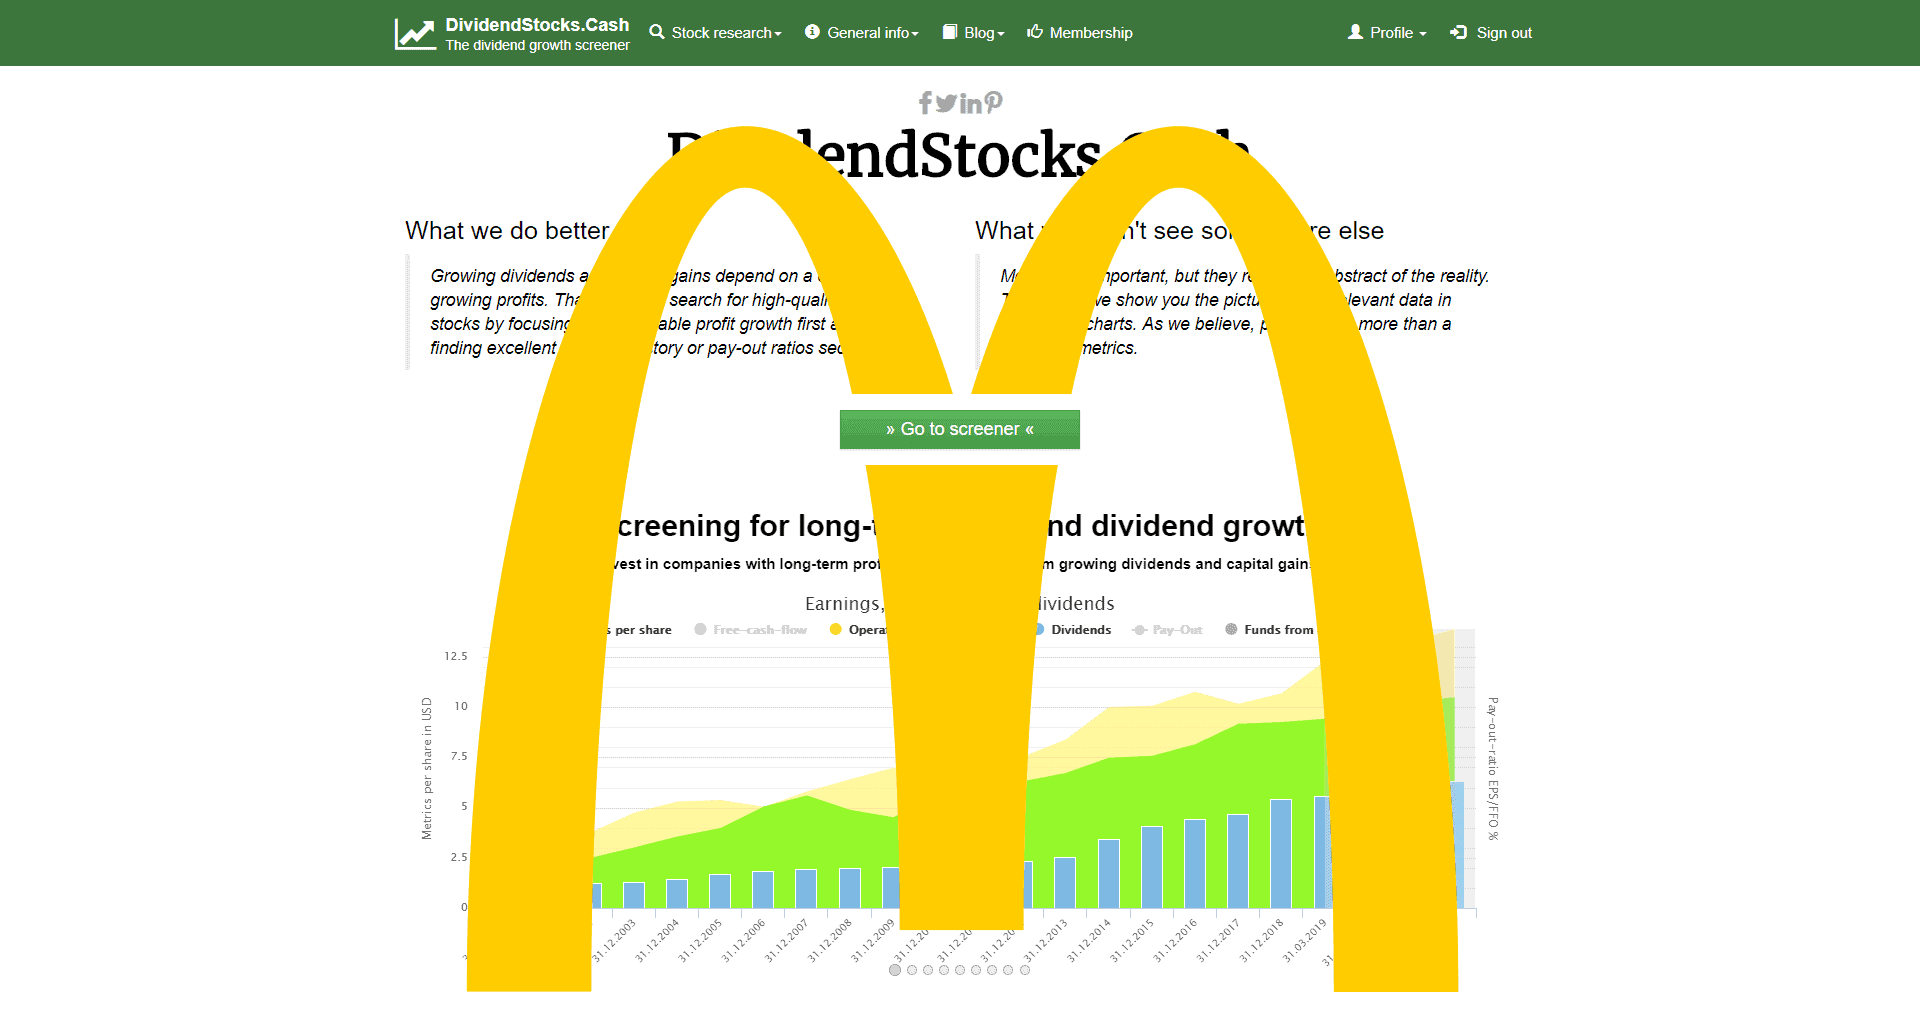 McDonalds stock –7 billion total sales lost